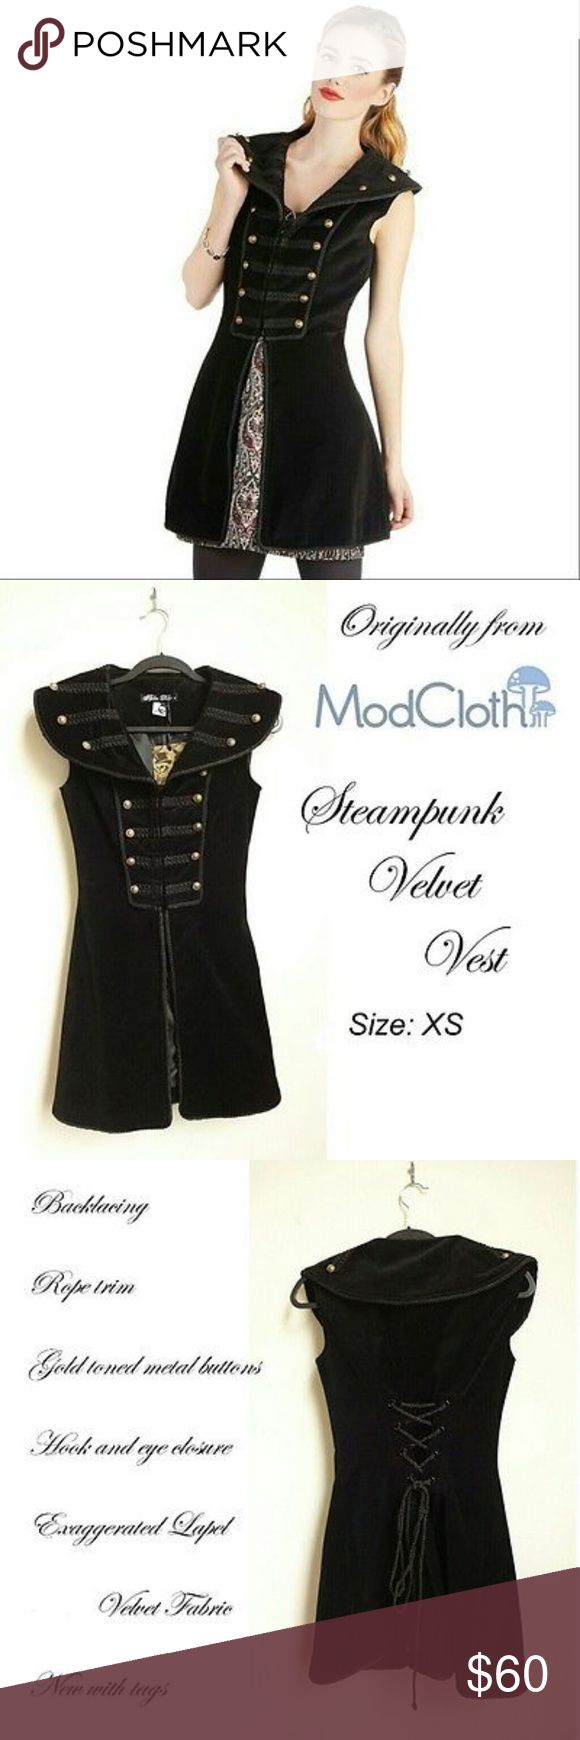 Modcloth Steampunk Black Velvet Vest Dress XS NWT Spin Doctor Black Steampunk Goth Victorian Velvet Vest Dress XS NWT  This Kariena Waistcoat is made by Spin Doctor originally purchased from  Modcloth. It has an extended lapel with rope trim and a colonial military style. Hook and eye closure inside and gold toned metal buttons in the front.  Measurements Bust: 32 inches  Waist: 26 inches  Hips: 33 inches  Length from top of shoulder: 31 inches Modcloth Dresses Mini